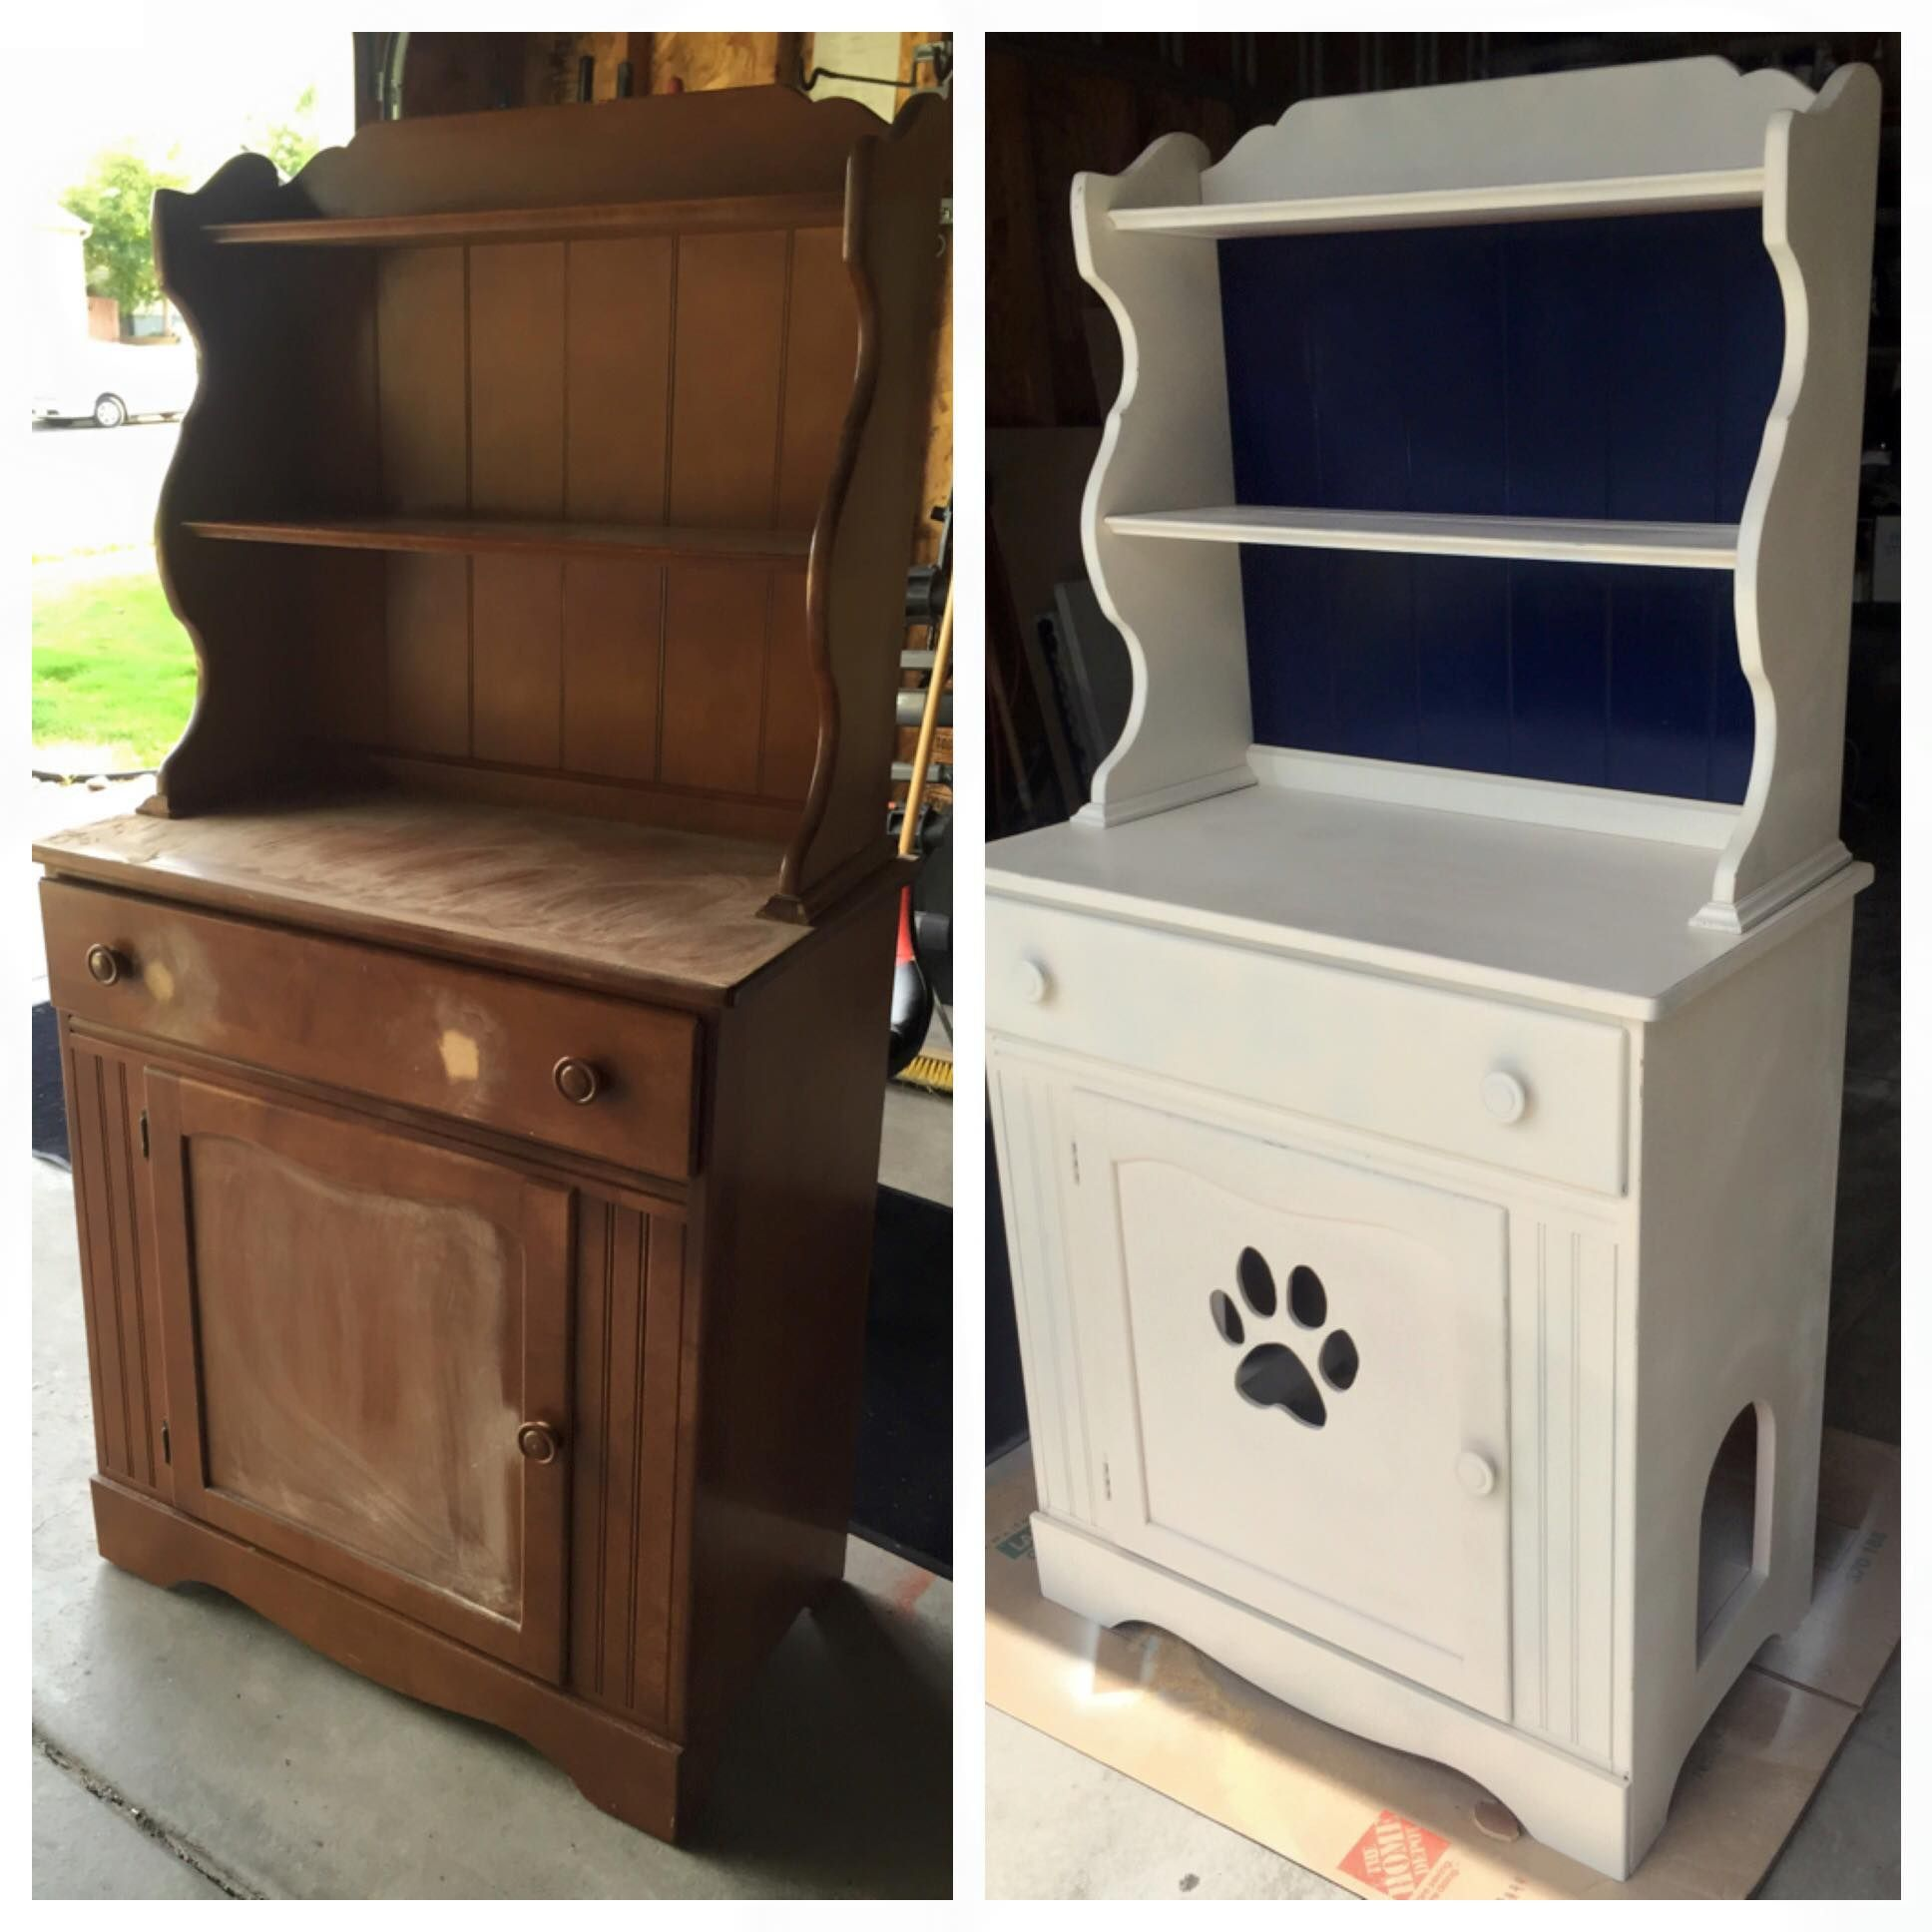 diy refurbished a cabinet to hide the cat litter box just the photo but i 39 m loving the look. Black Bedroom Furniture Sets. Home Design Ideas